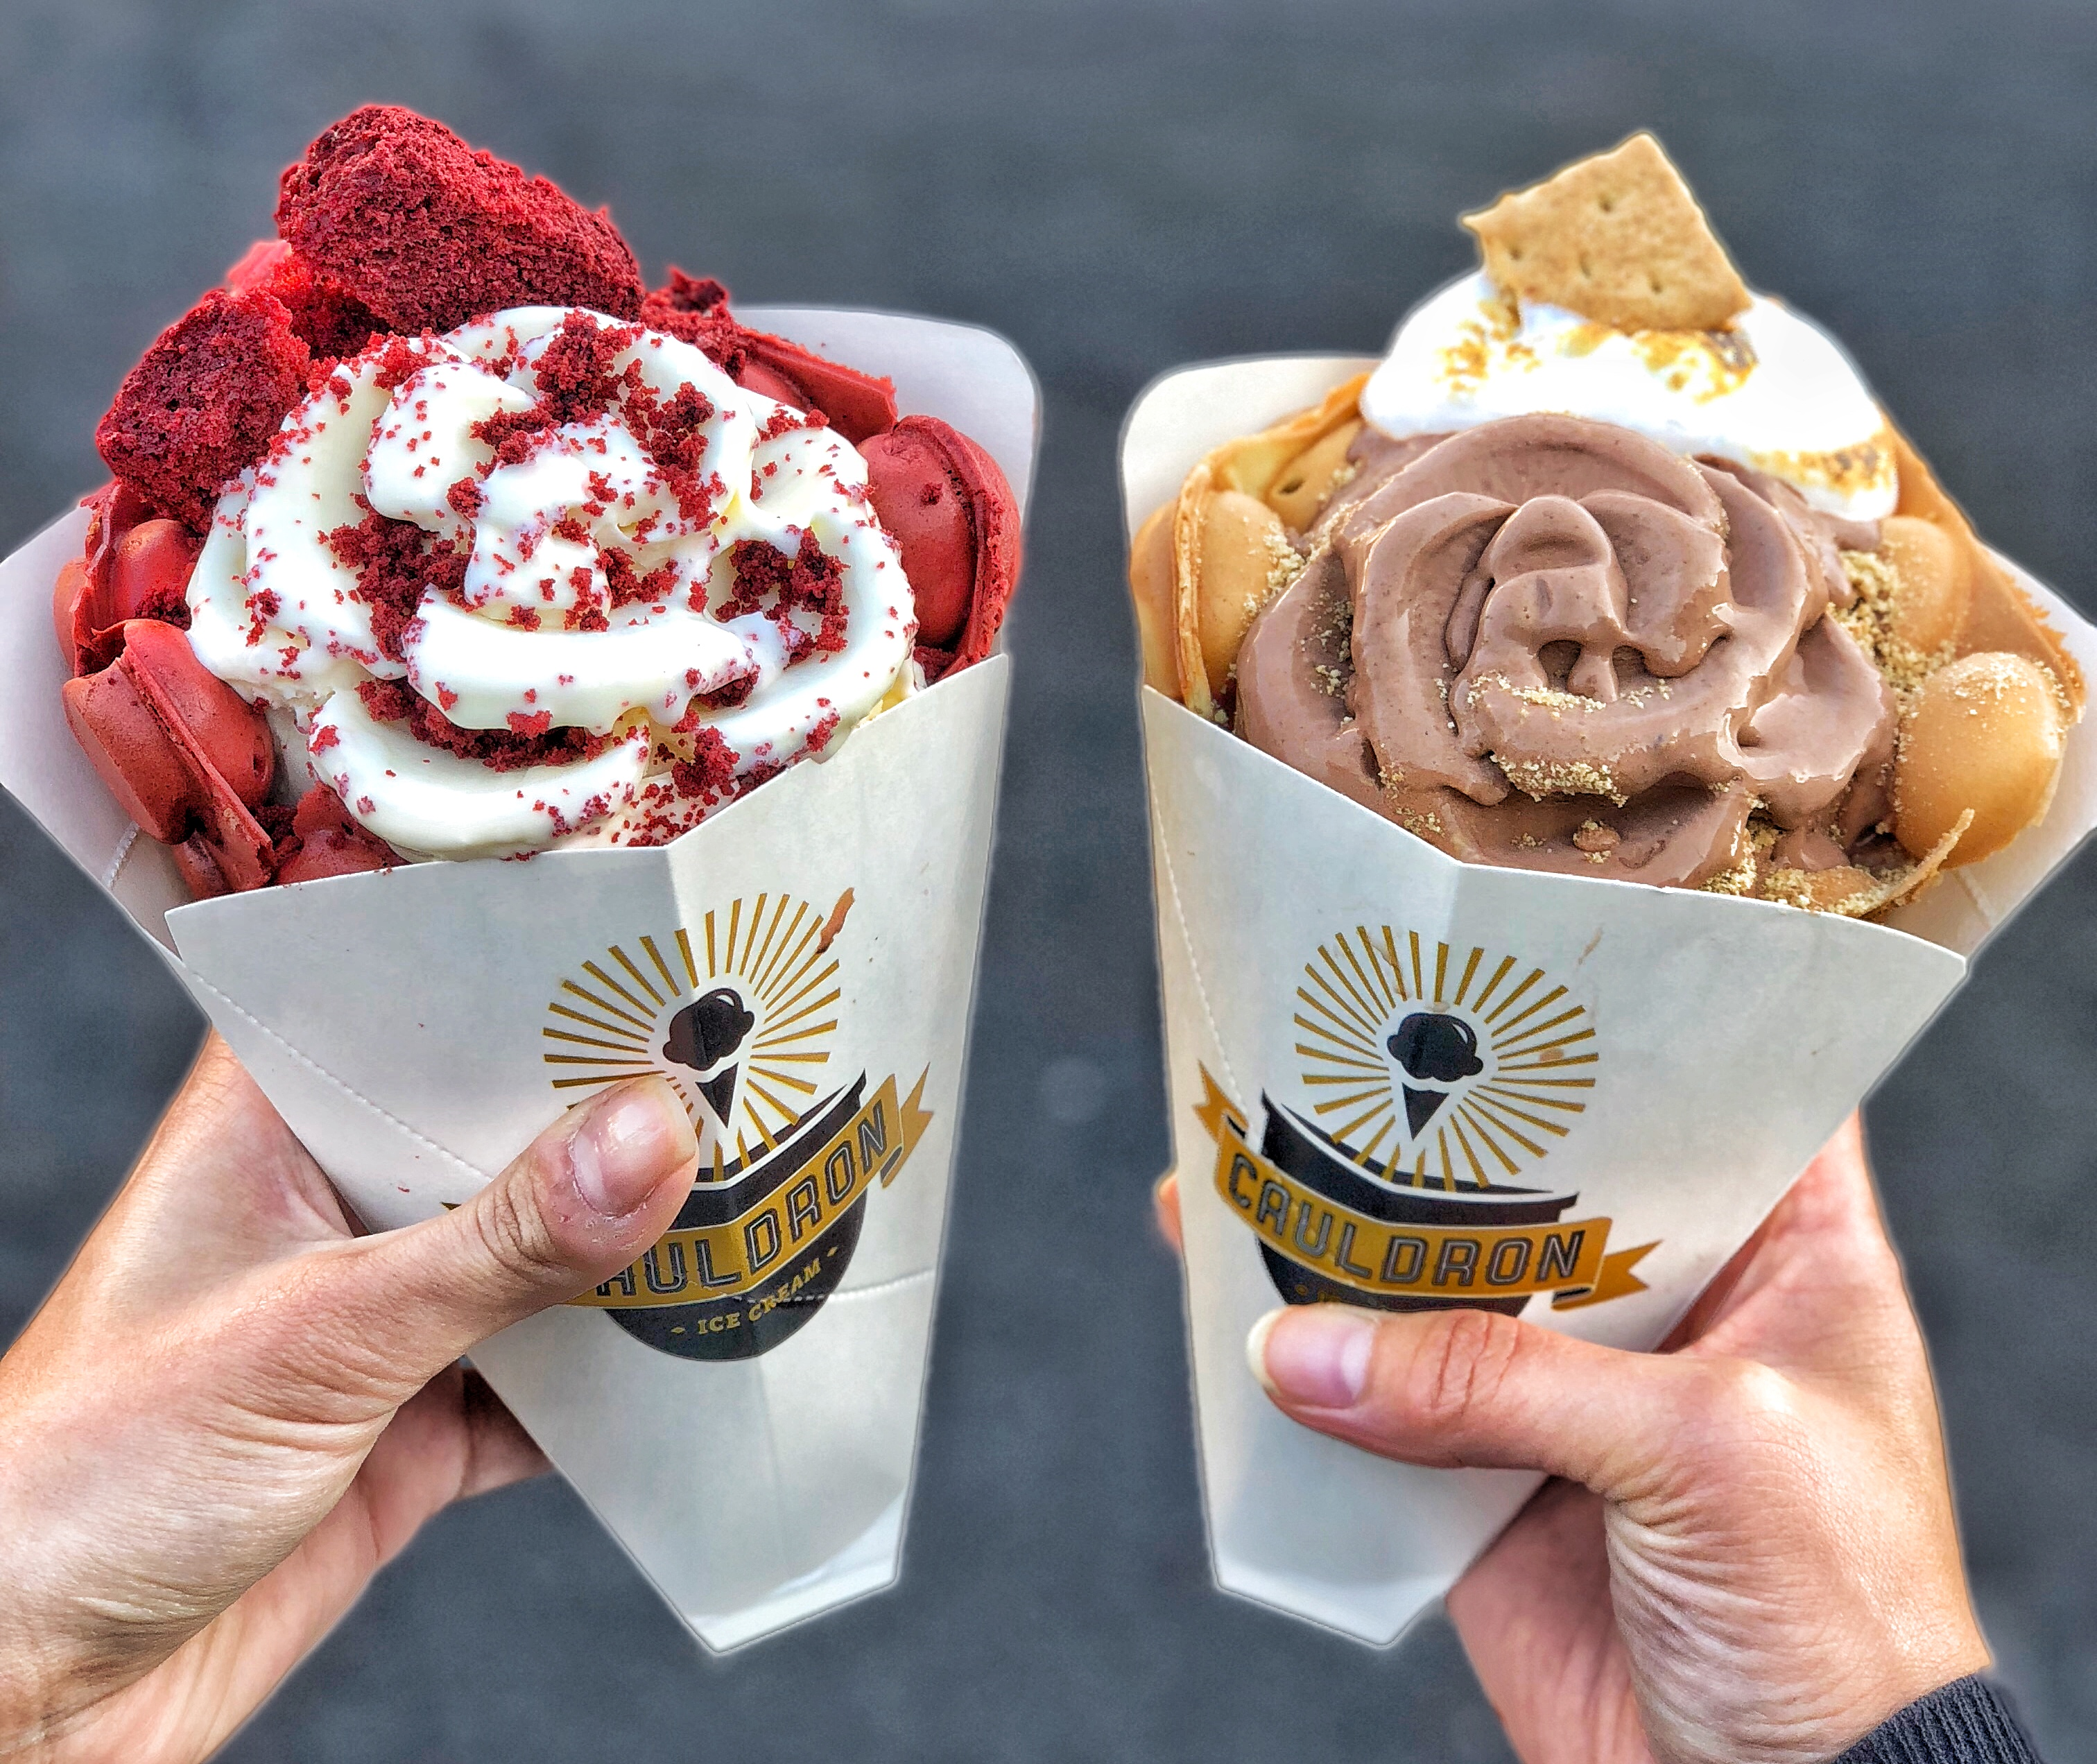 Top 5 Ice Cream Shops in LA That You Have To Try